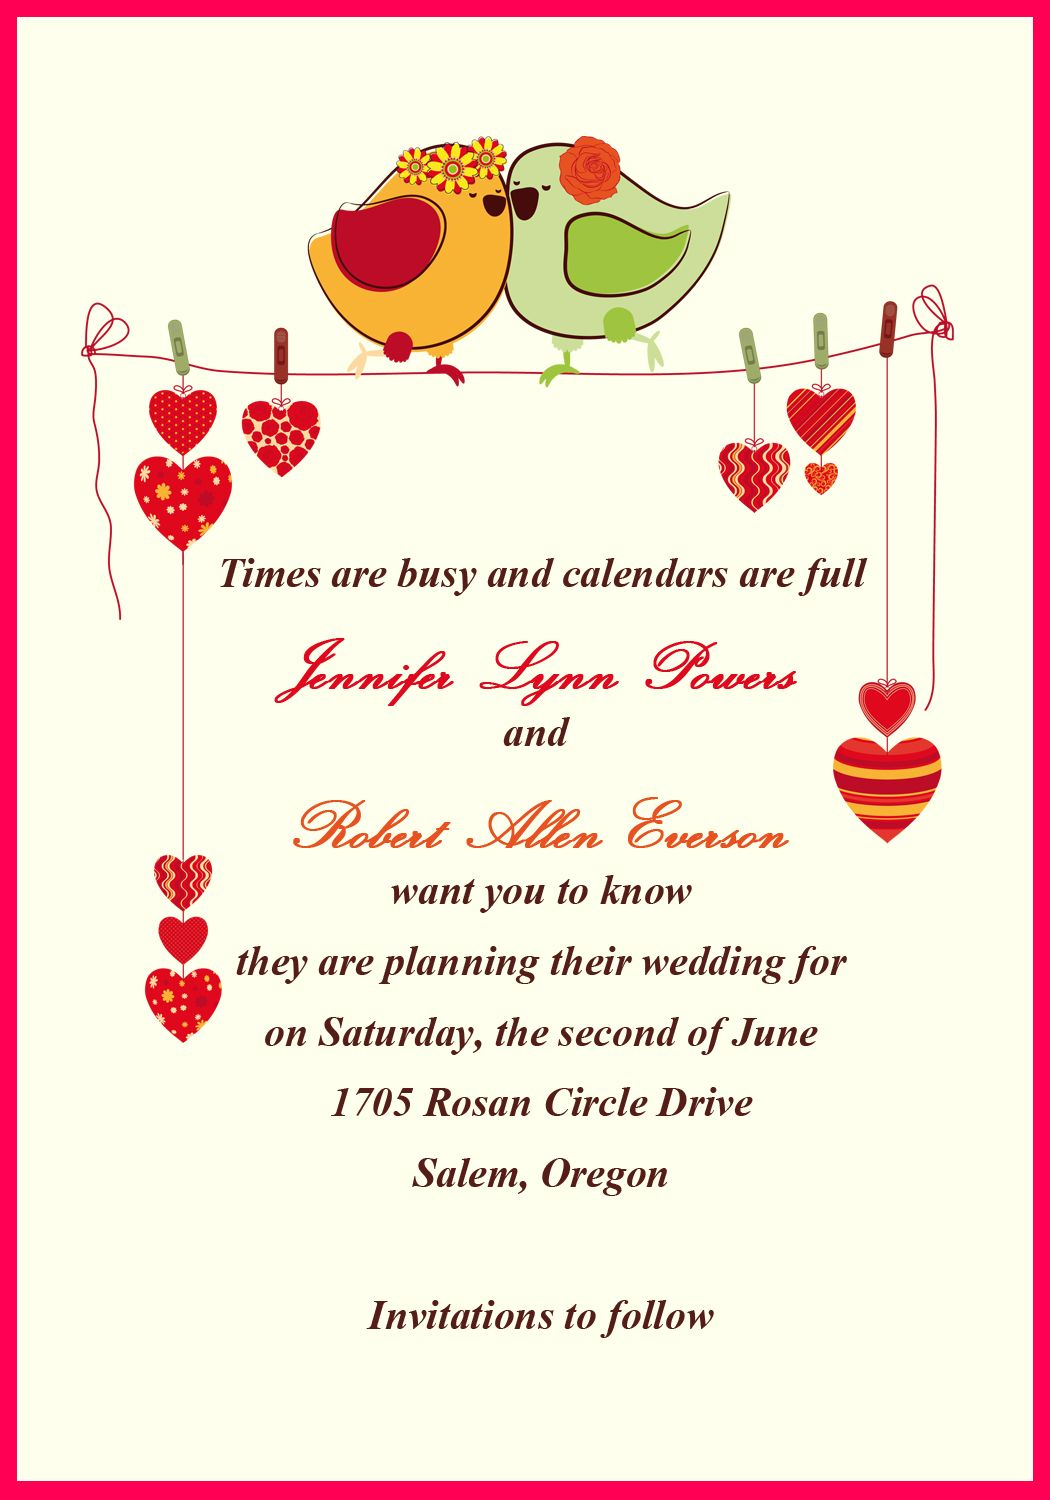 Wedding Invitation Sms For Friends